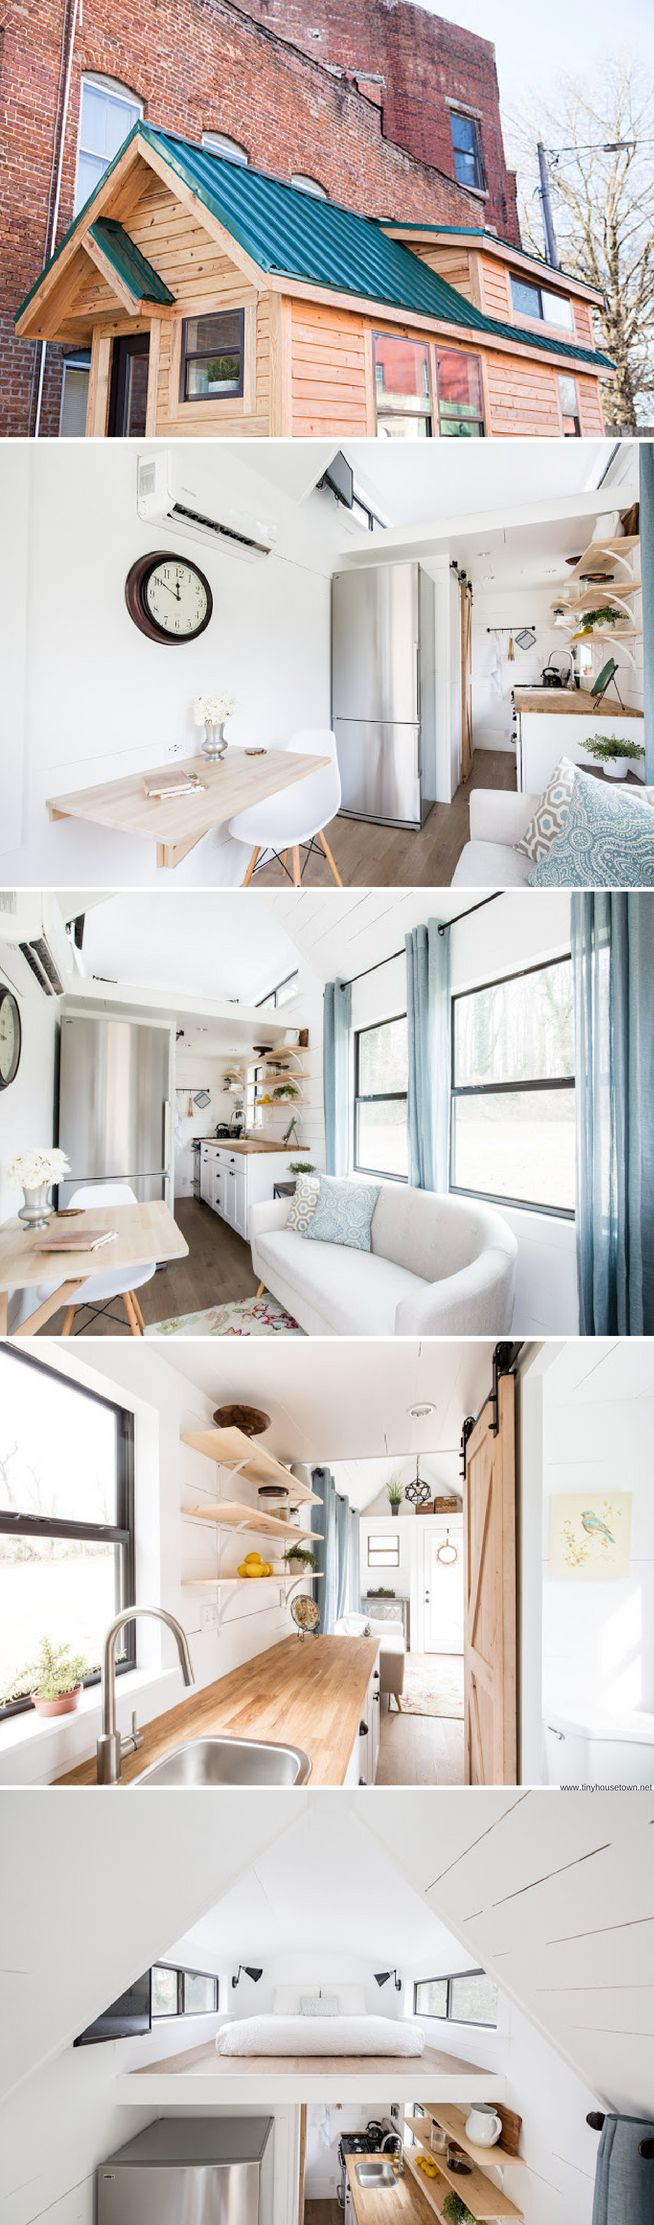 509 best Tiny homes images on Pinterest | Home ideas, Small spaces ...